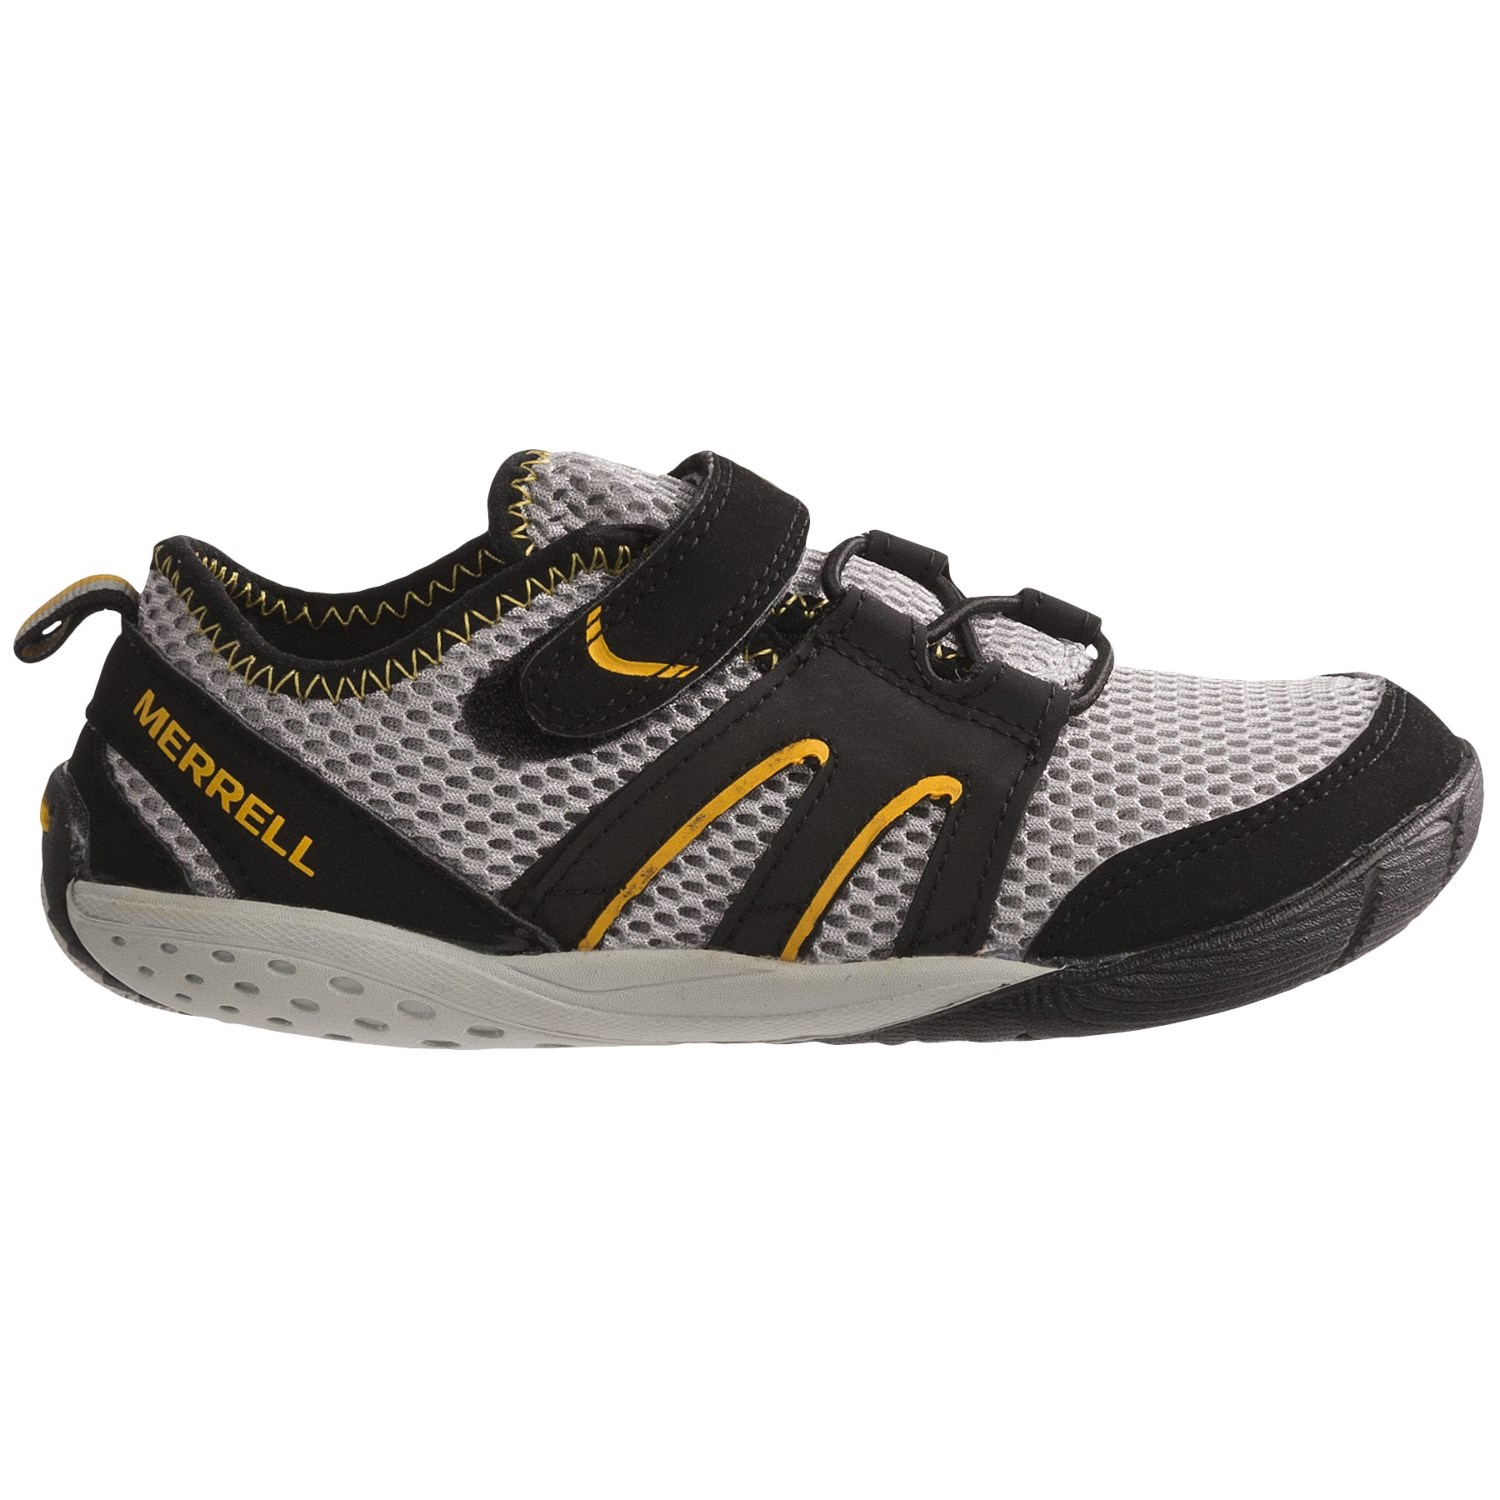 Barefoot Running Shoes Reviews